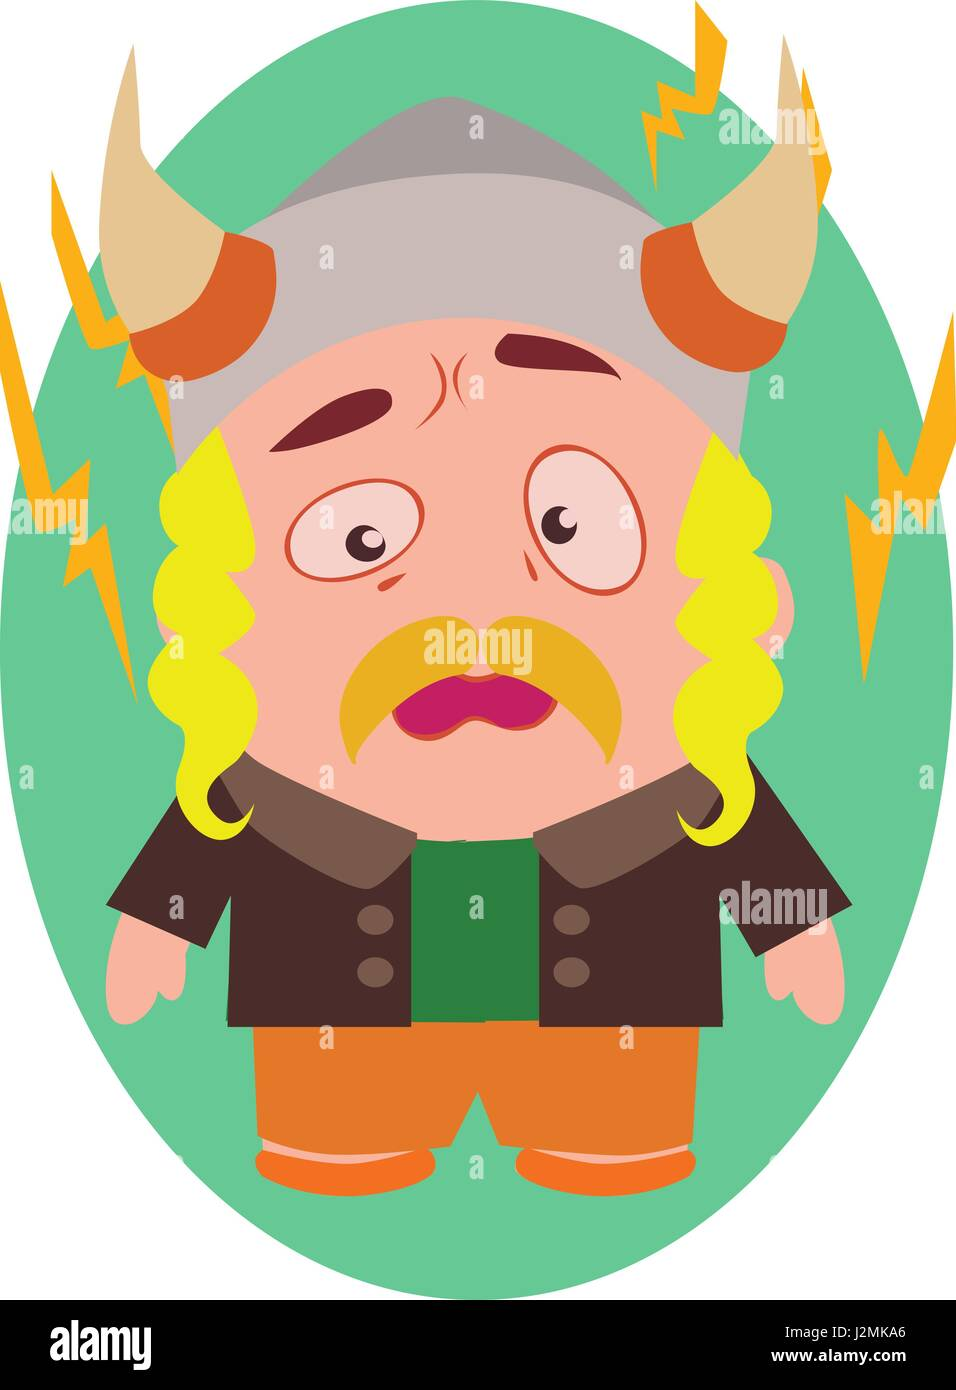 Cute Cool And Funny Viking Avatar Of Little Person Cartoon